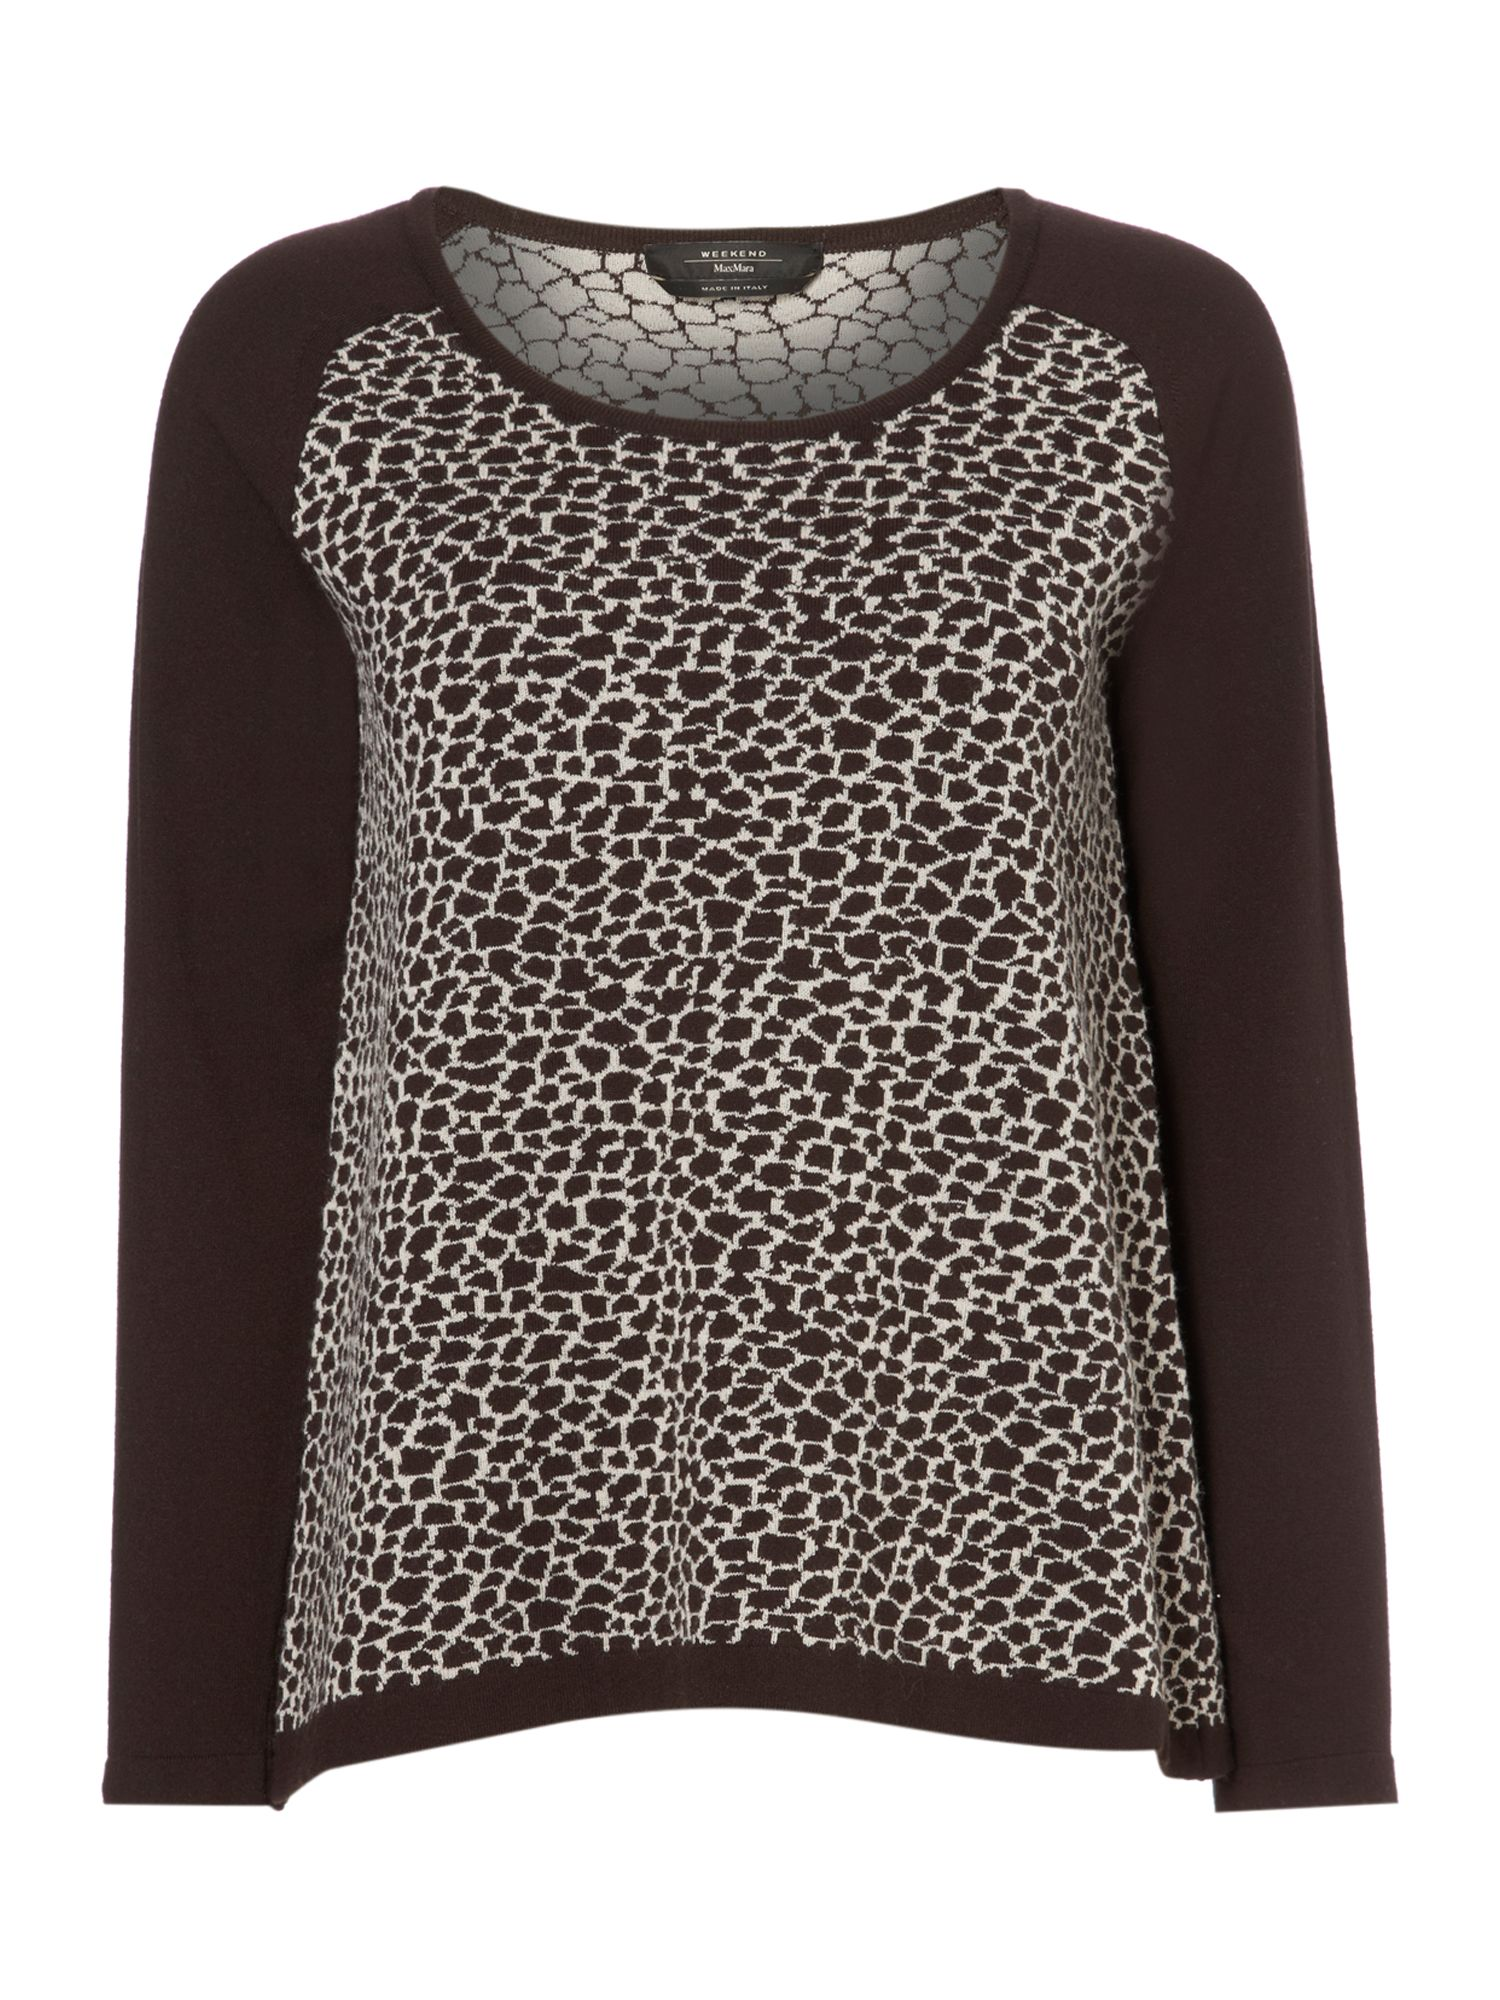 Ande animal print front long sleeved knitted top